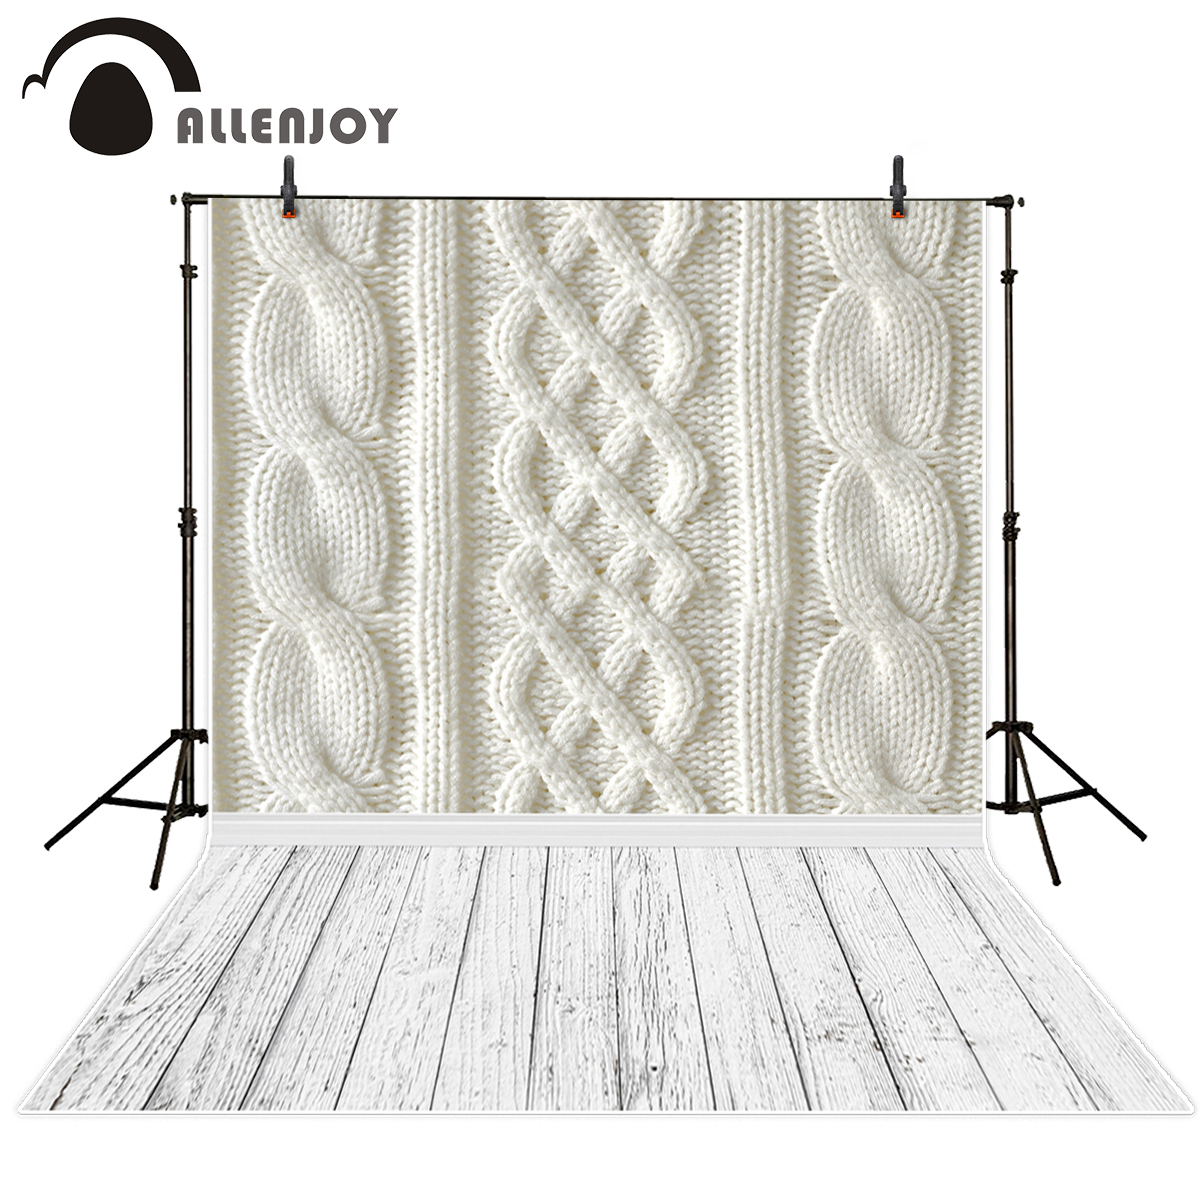 Allenjoy photography backdrops White wool yarn pattern and wood floor backgrounds for photo studio photography backdrop vinyl allenjoy photography backdrops white and gray brick wall brick floor backgrounds for photo studio photography studio backgrounds